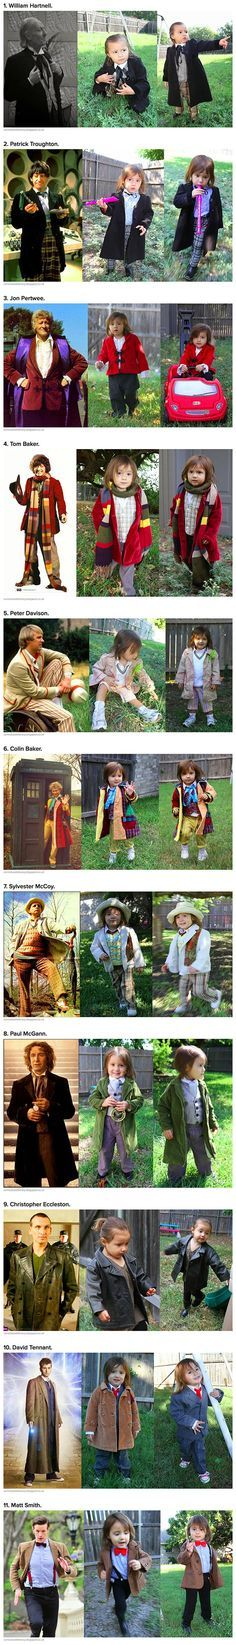 This geeky little girl decided to dress up as 11 of the doctors from Dr. Who. -- Cutest thing ever.